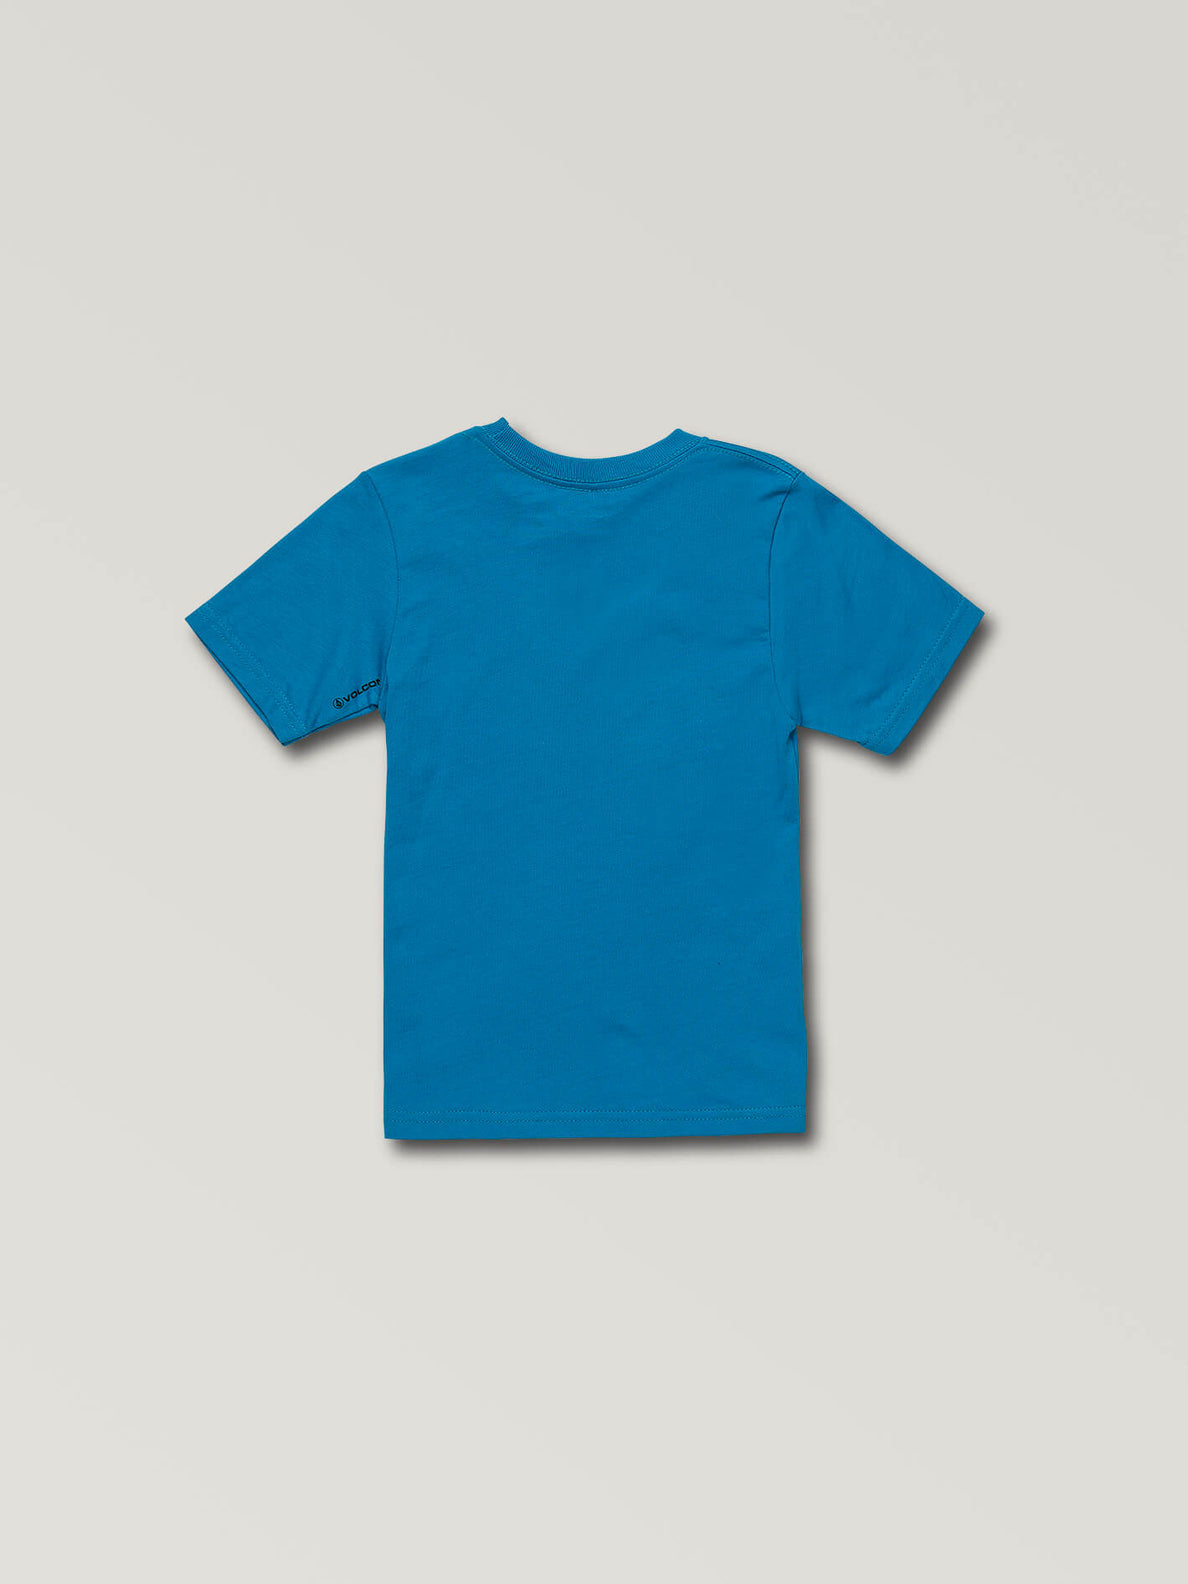 Little Boys Super Clean Short Sleeve Tee In Bright Blue, Back View